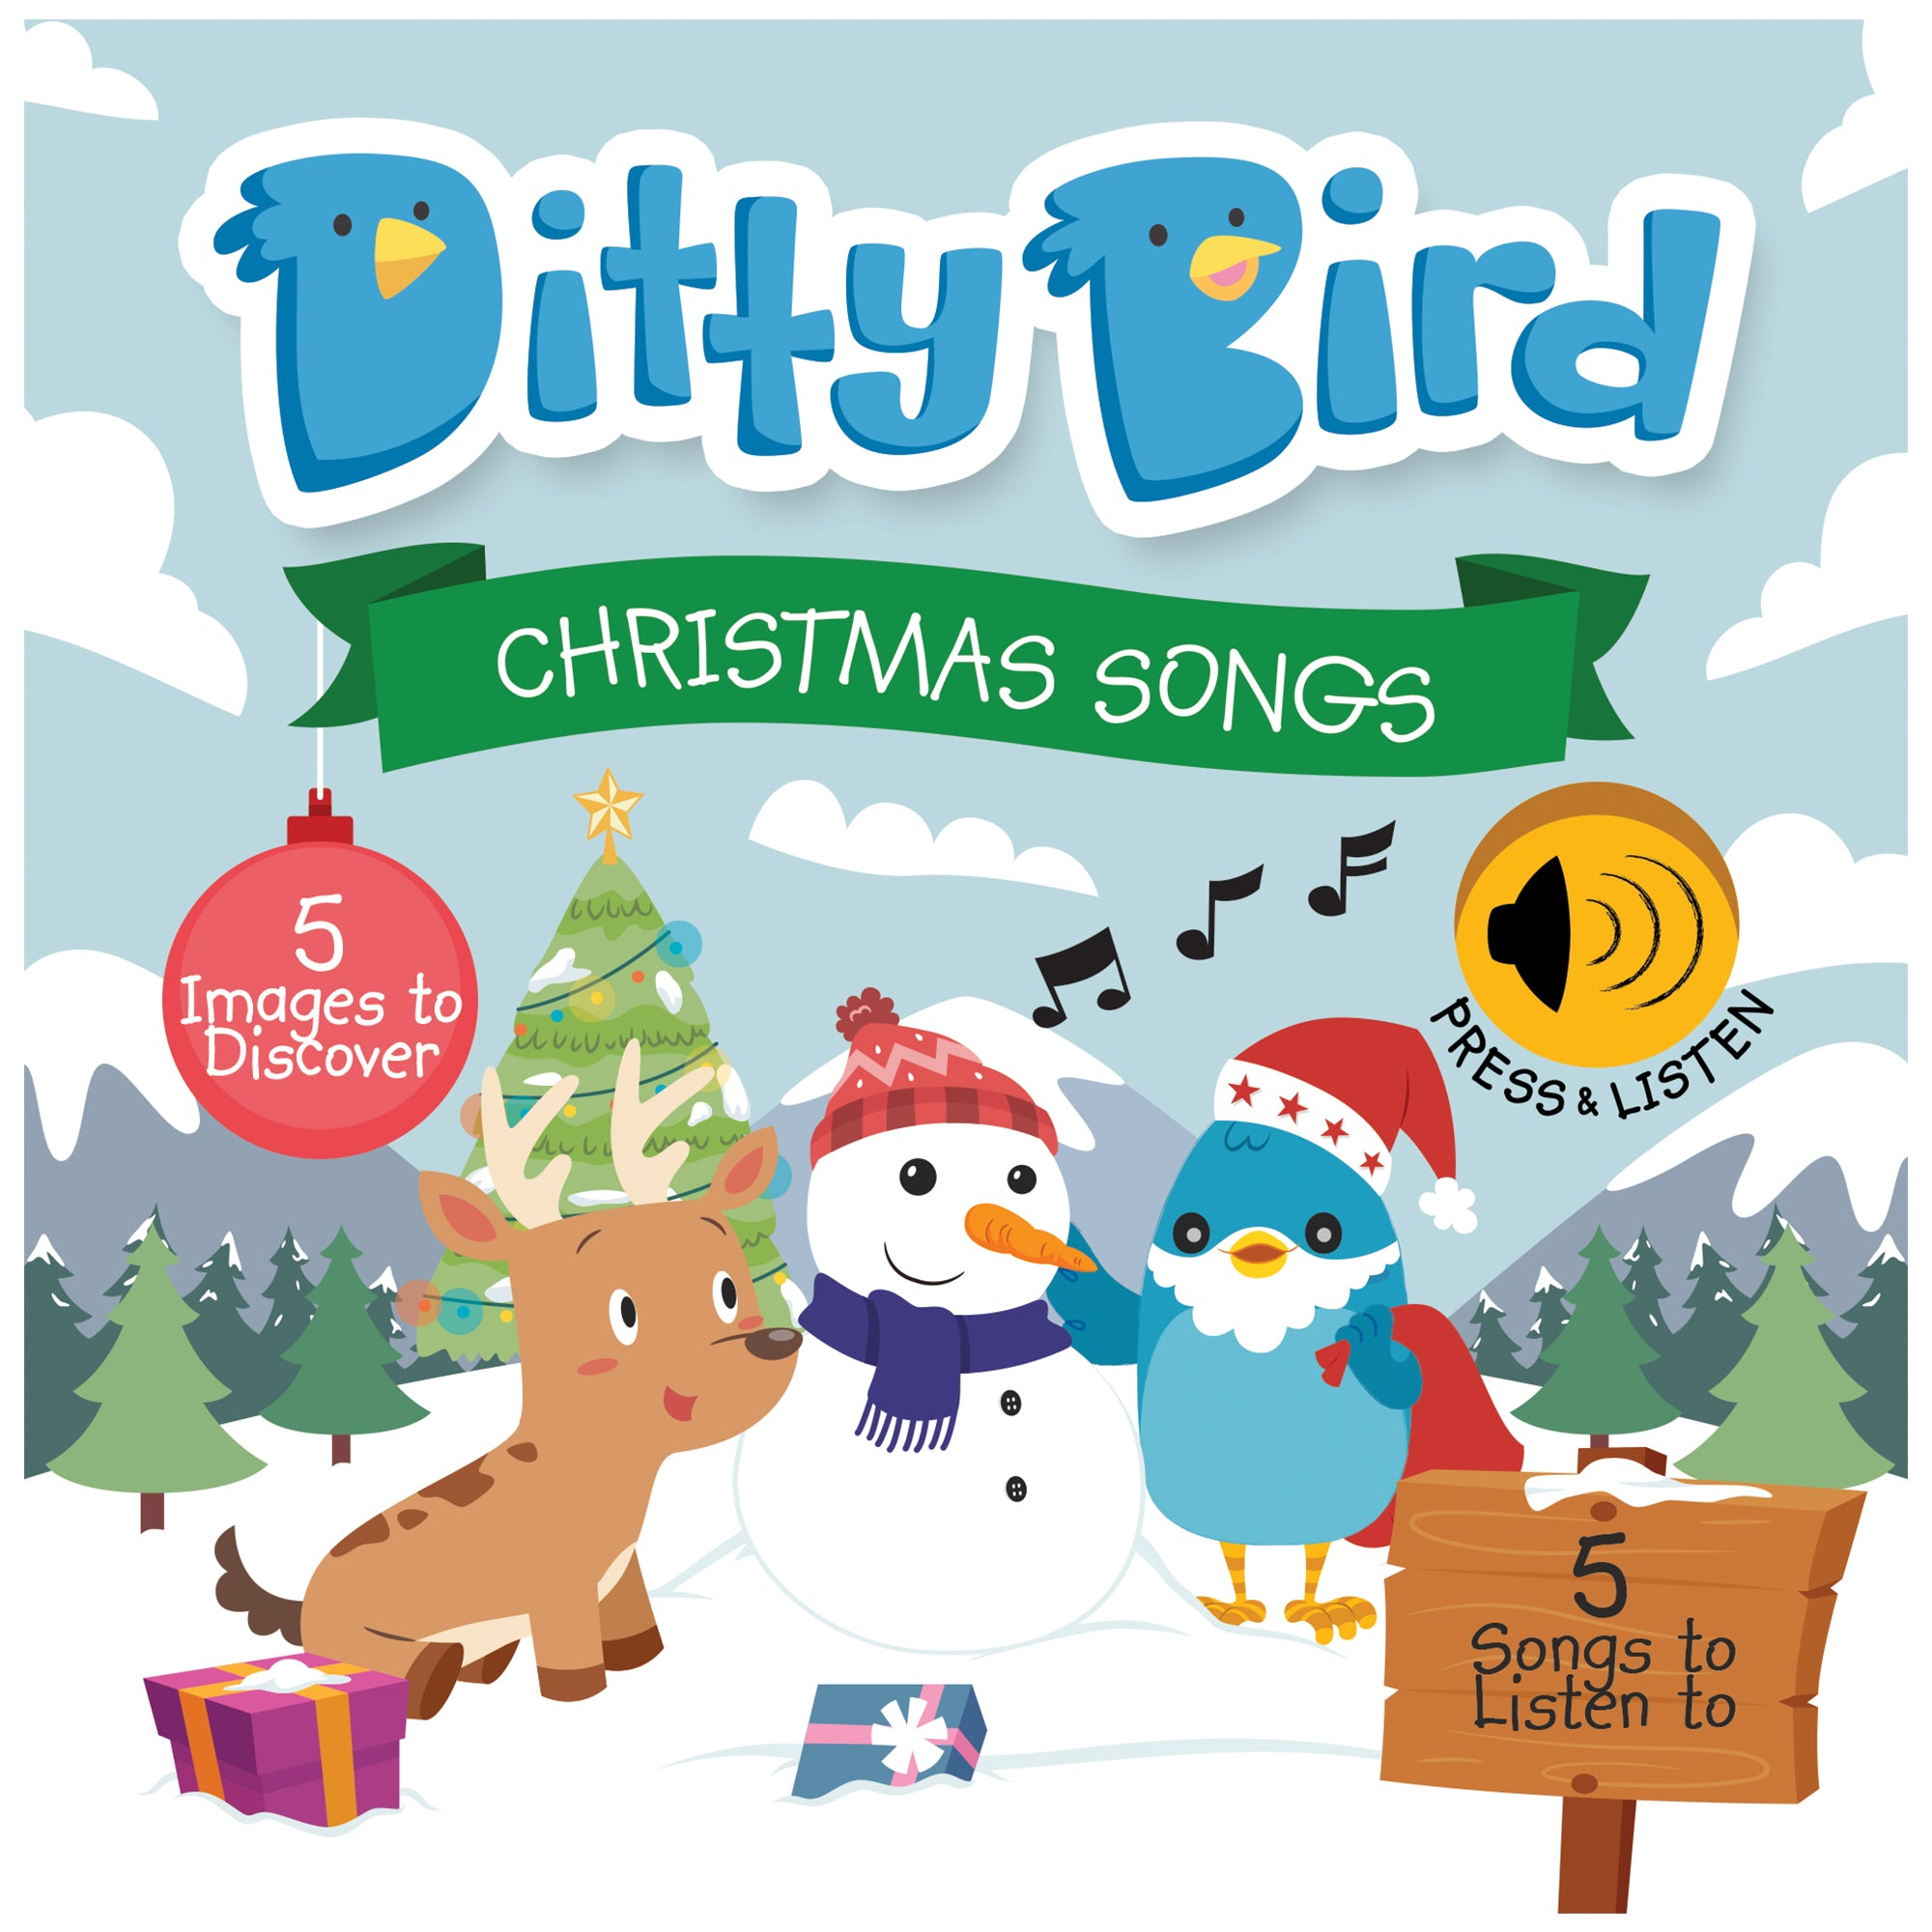 COMING SOON! Ditty Bird - Christmas Songs